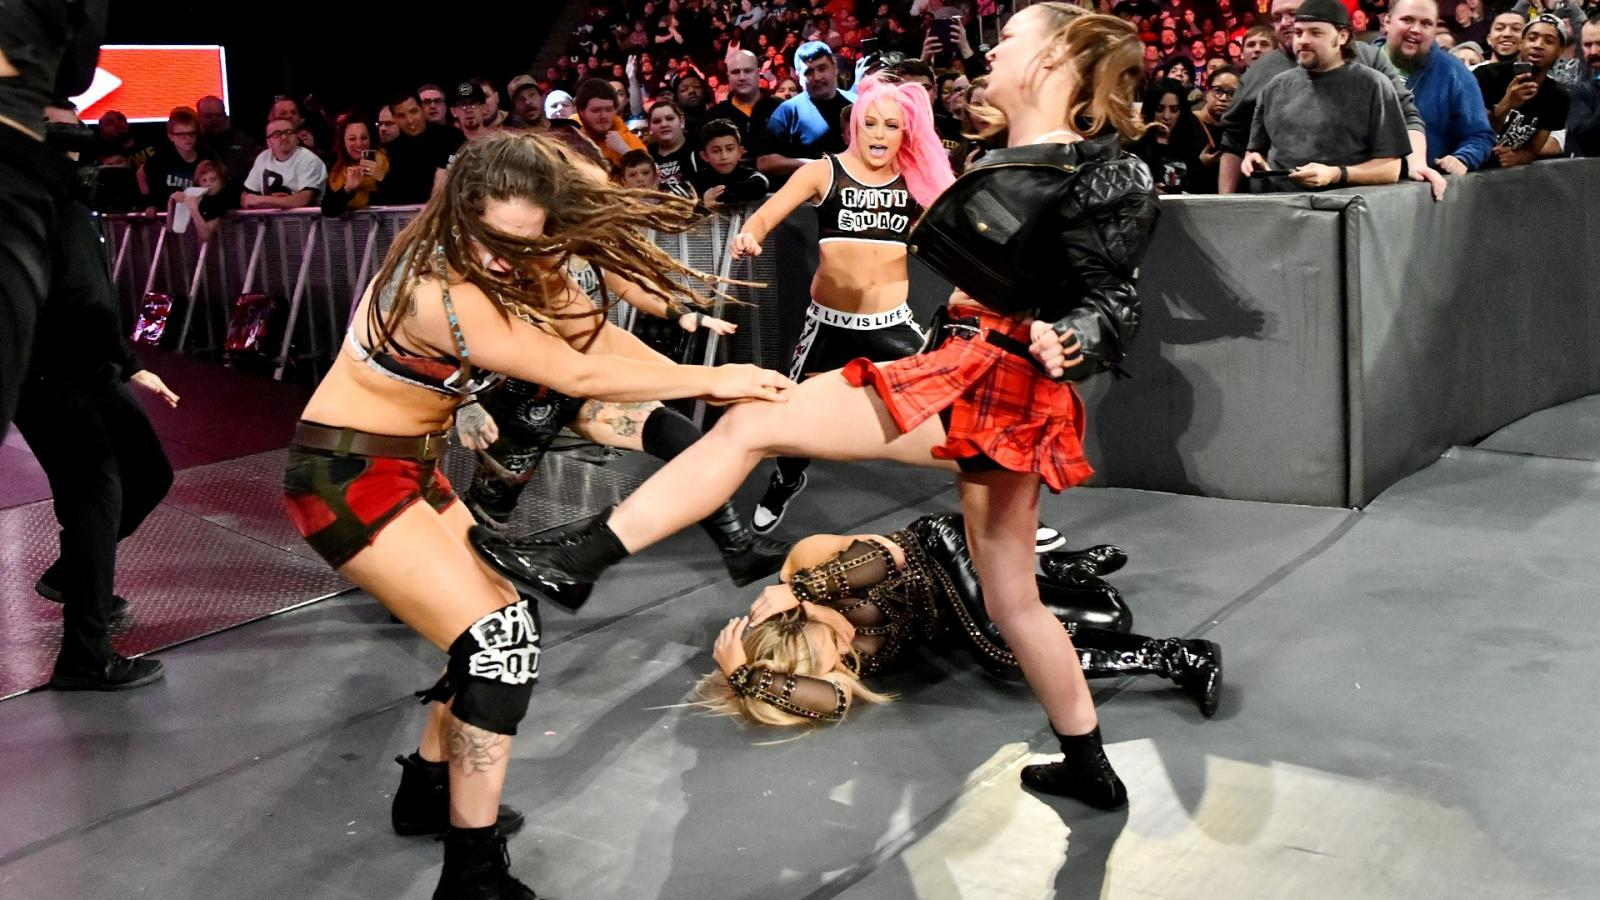 Ronda Rousey (right) fighting the Riott Squad (image courtesy WWE.com)